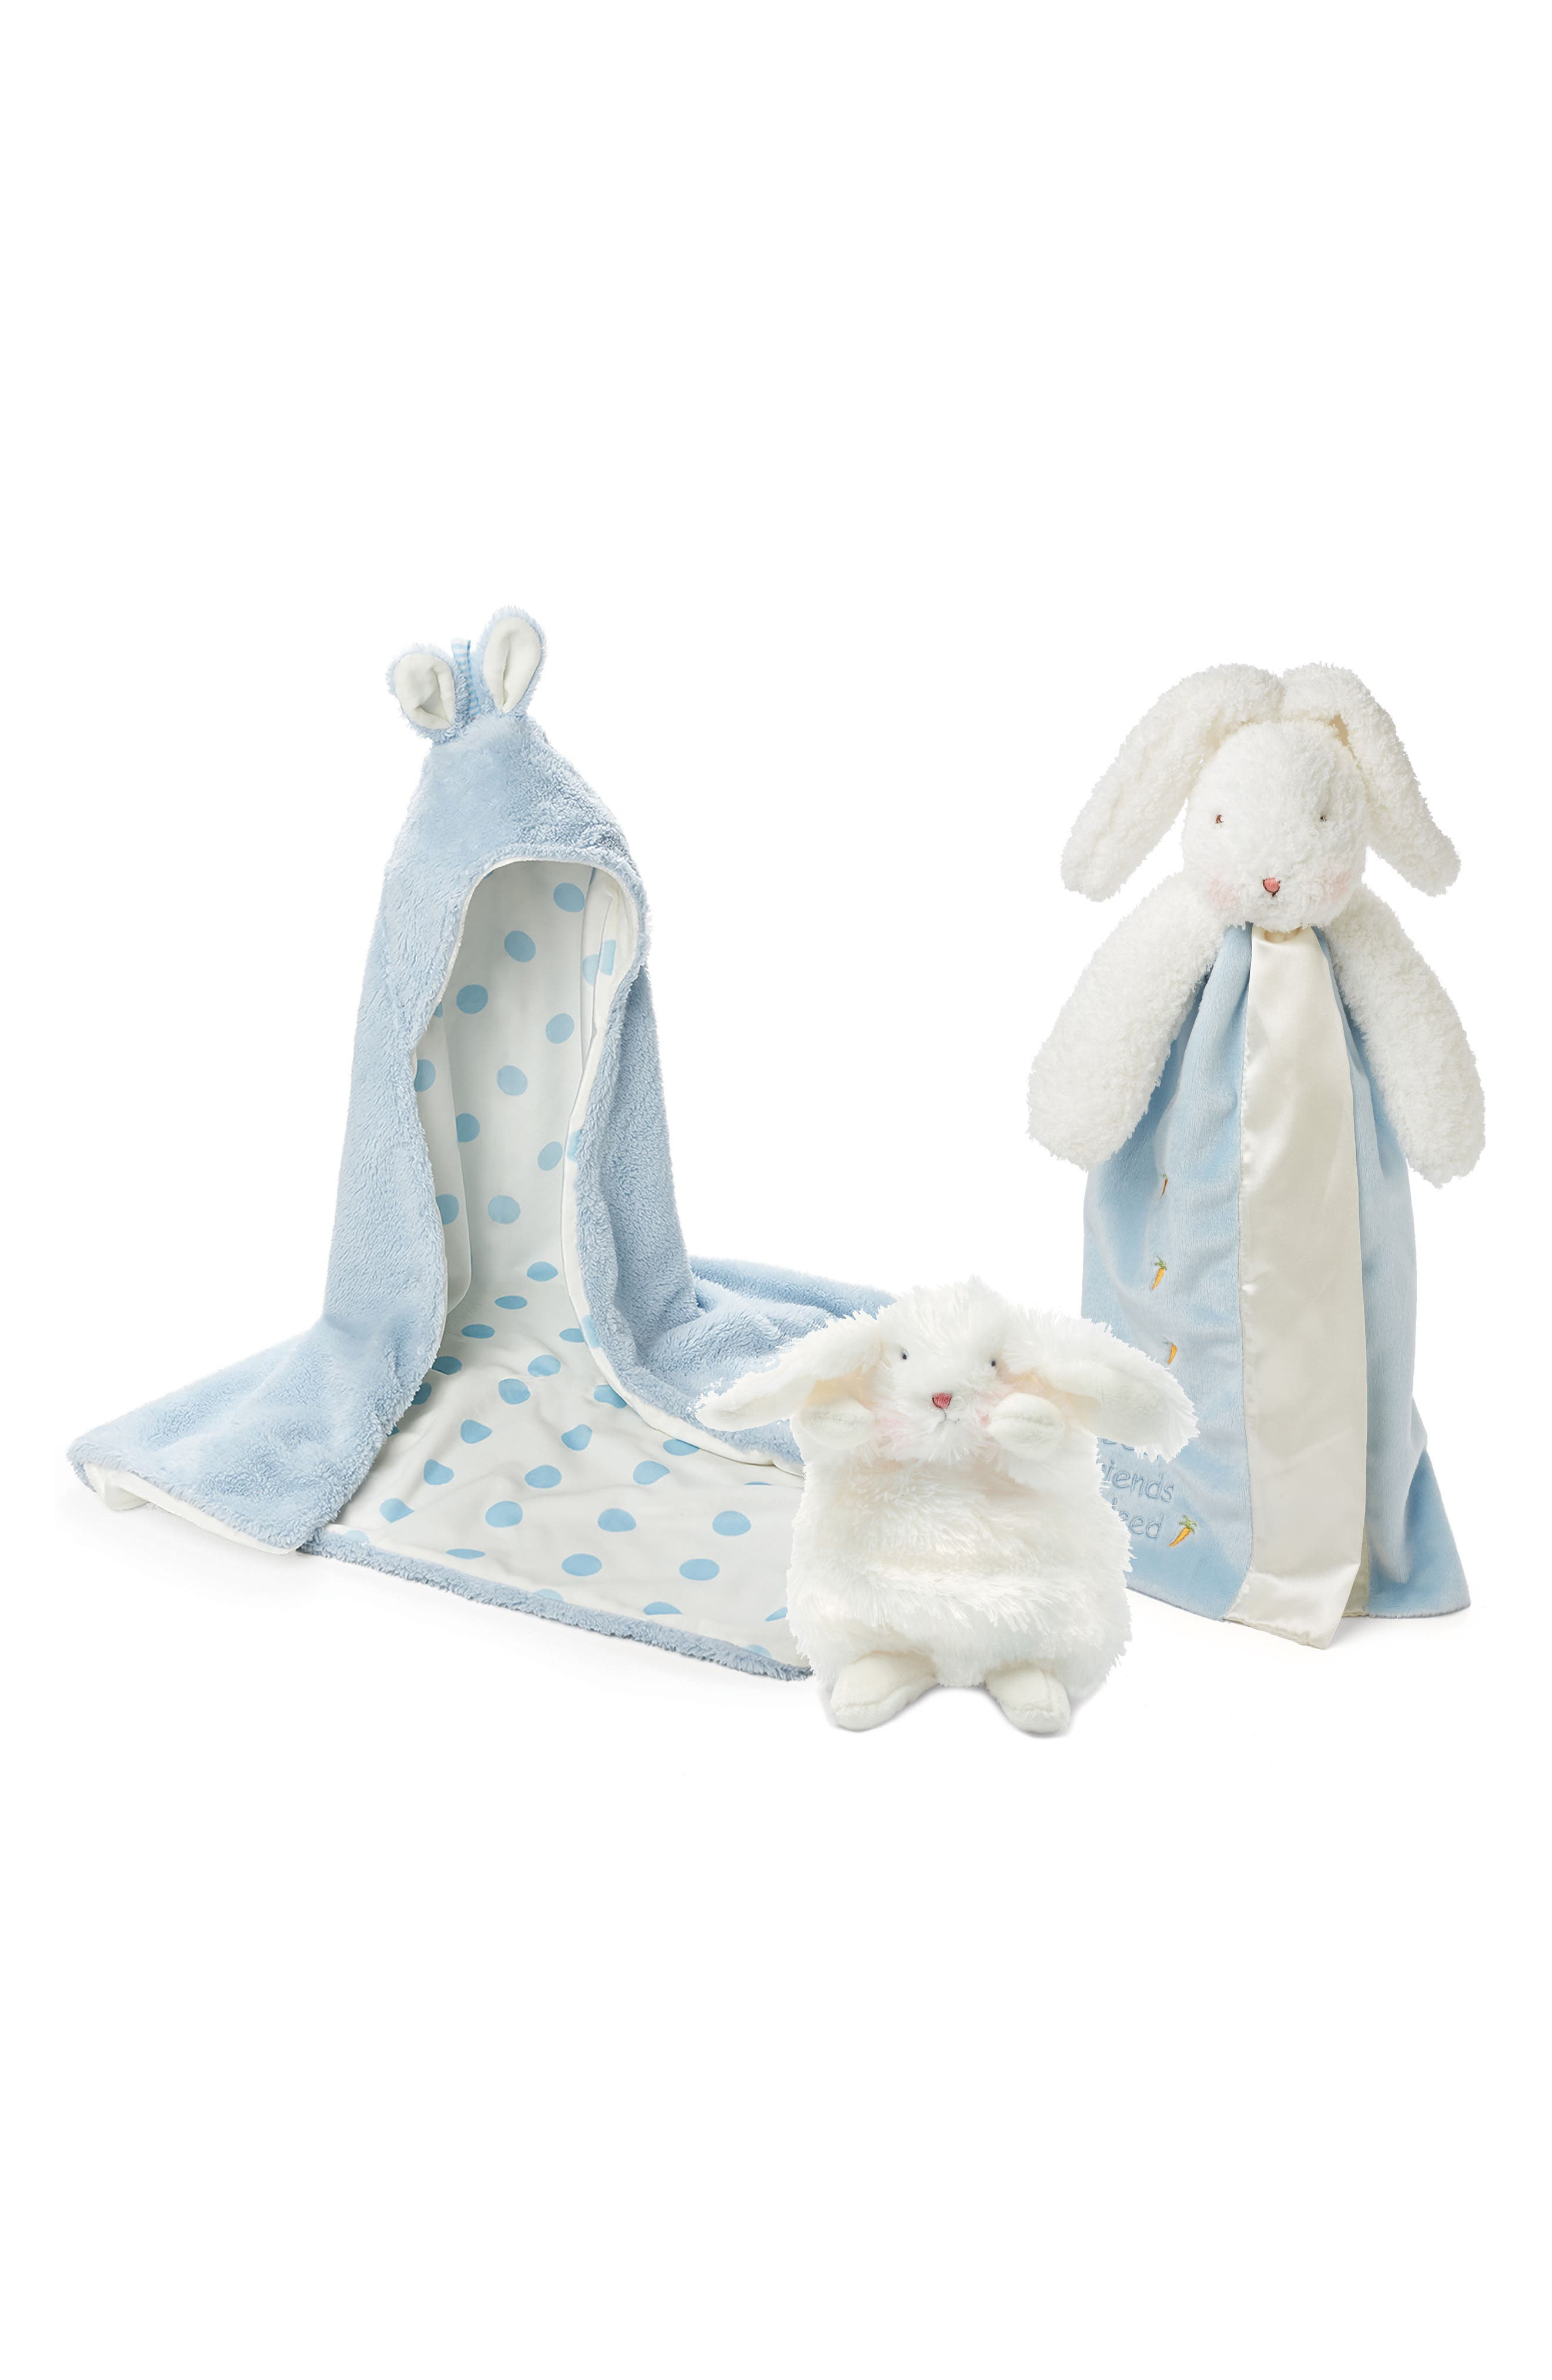 Bunnies by the Bay Hooded Blanket, Lovie & Stuffed Animal Set